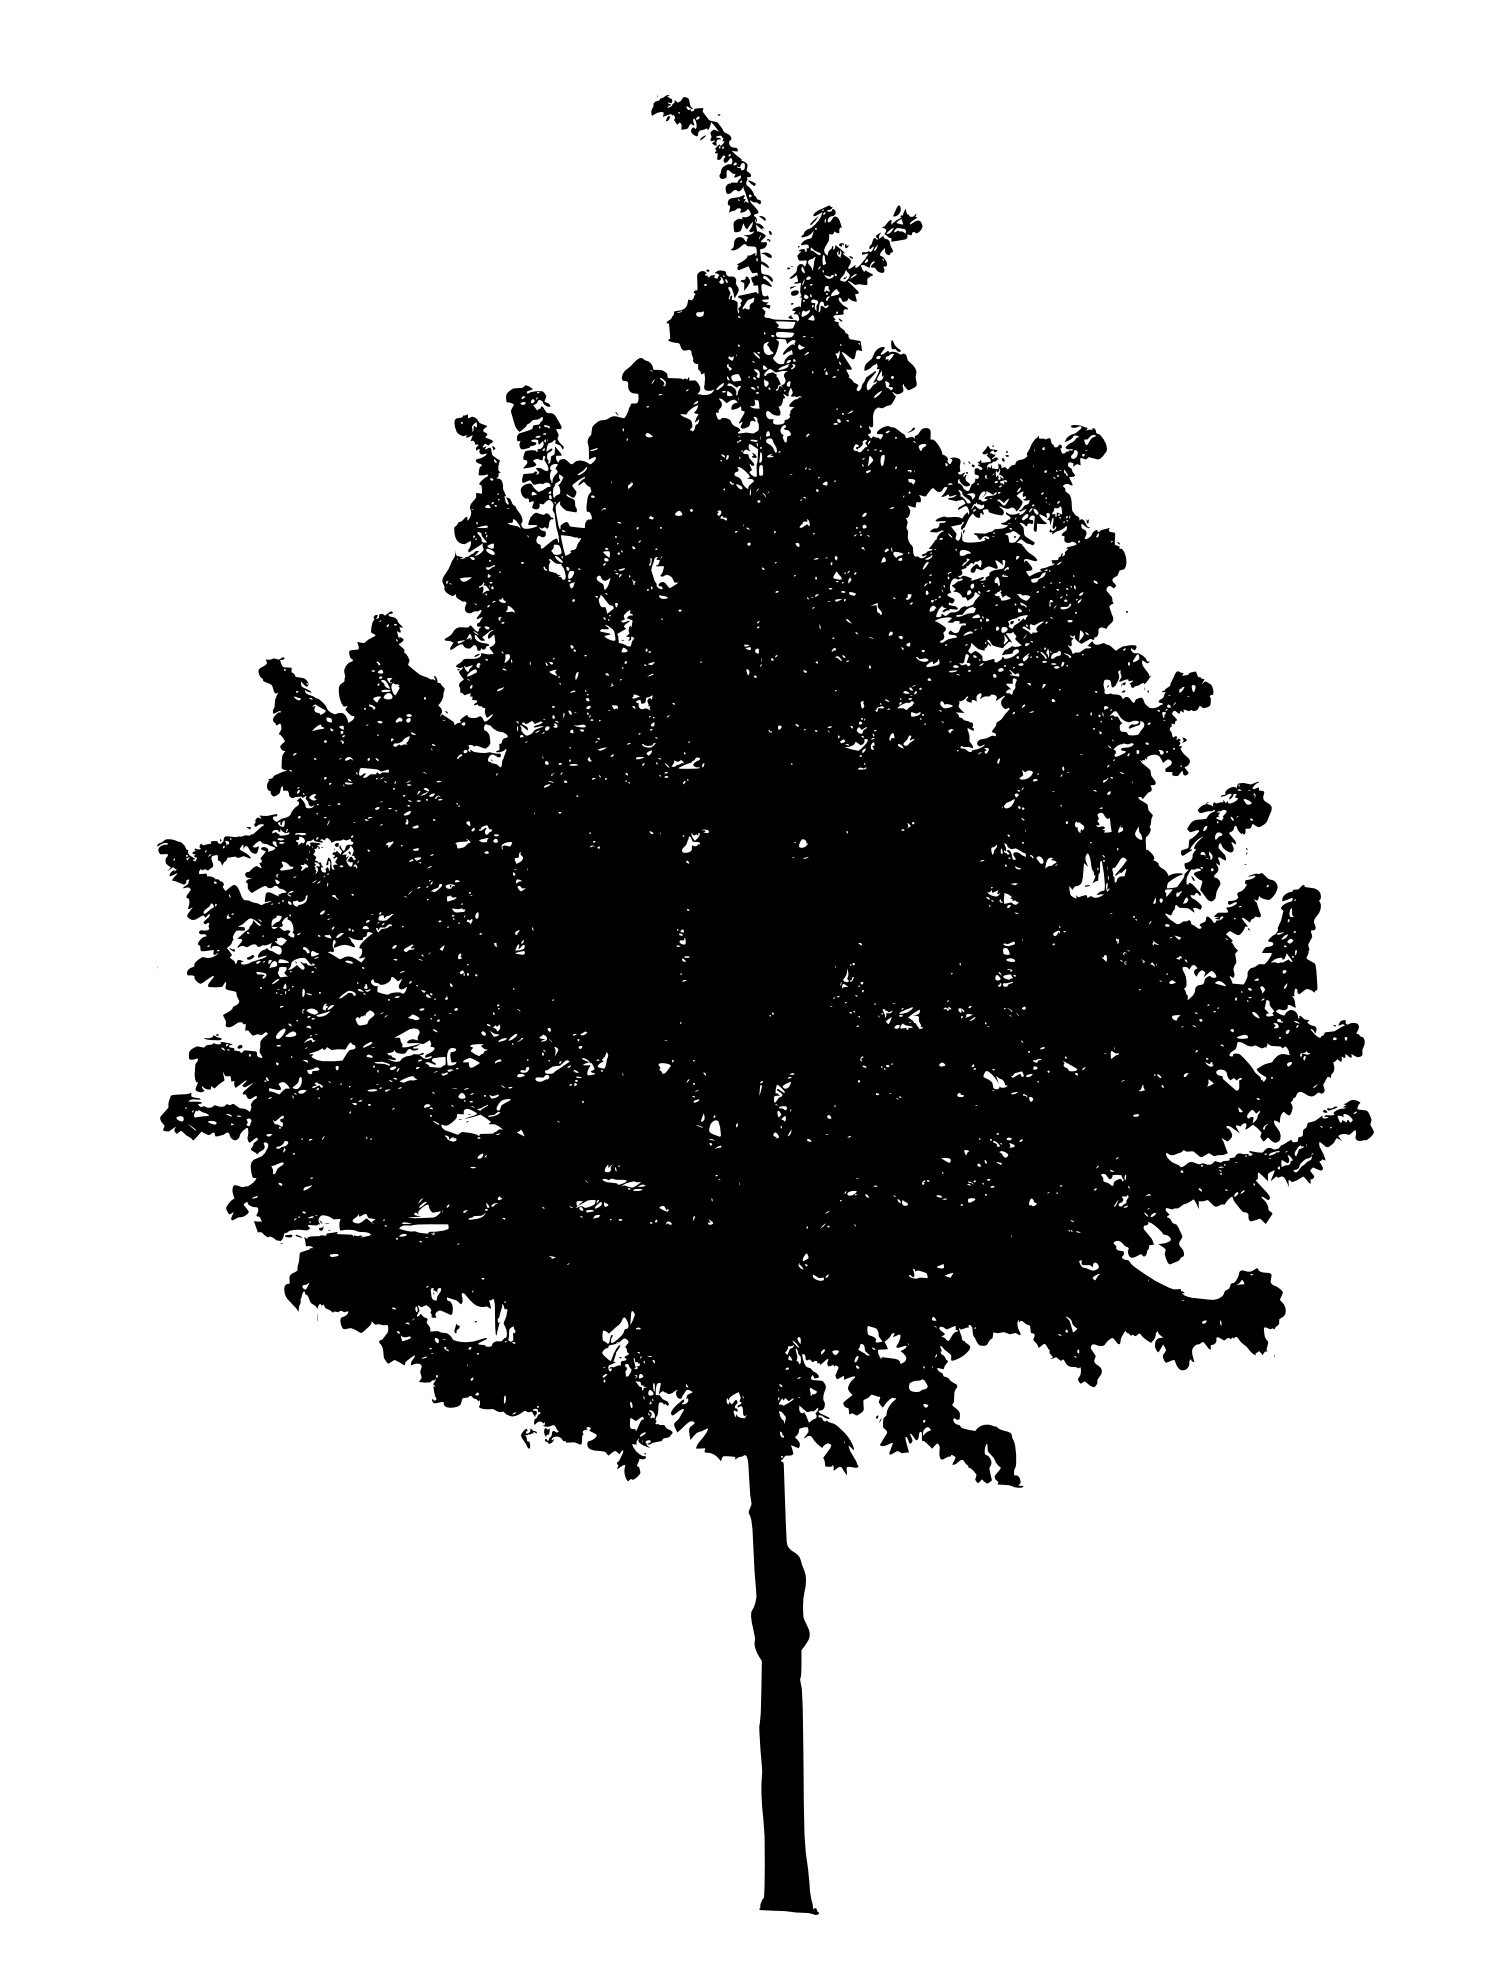 Black tree png. Image transparent onlygfx